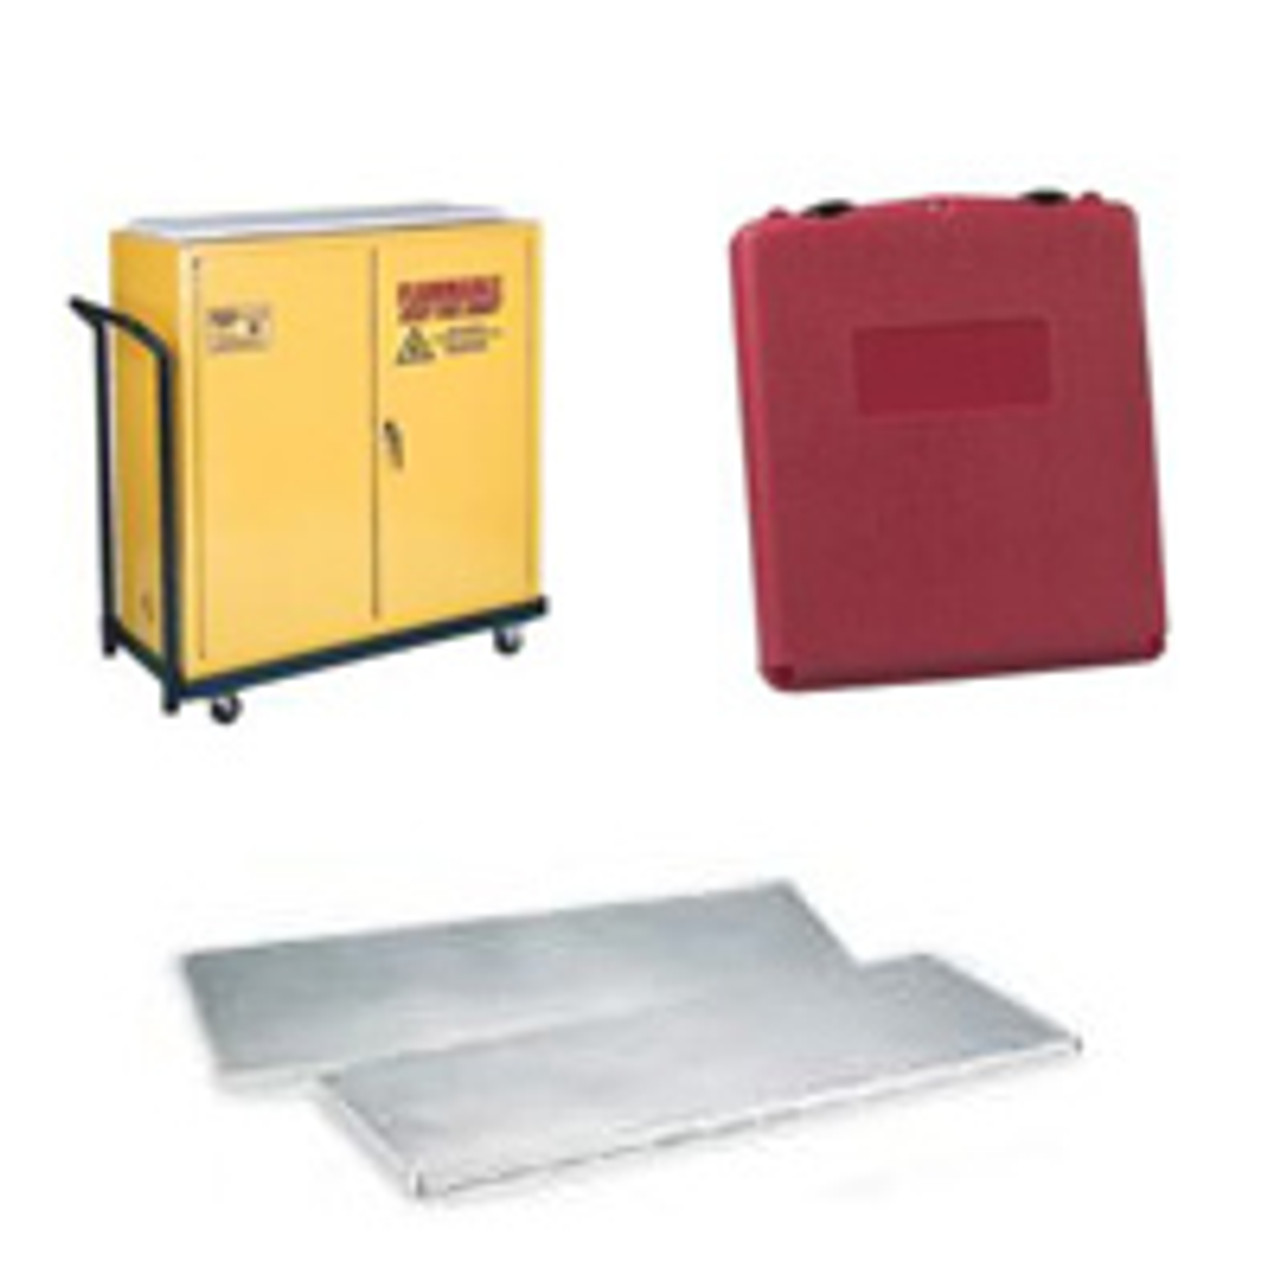 All Safety Cabinet Accessories